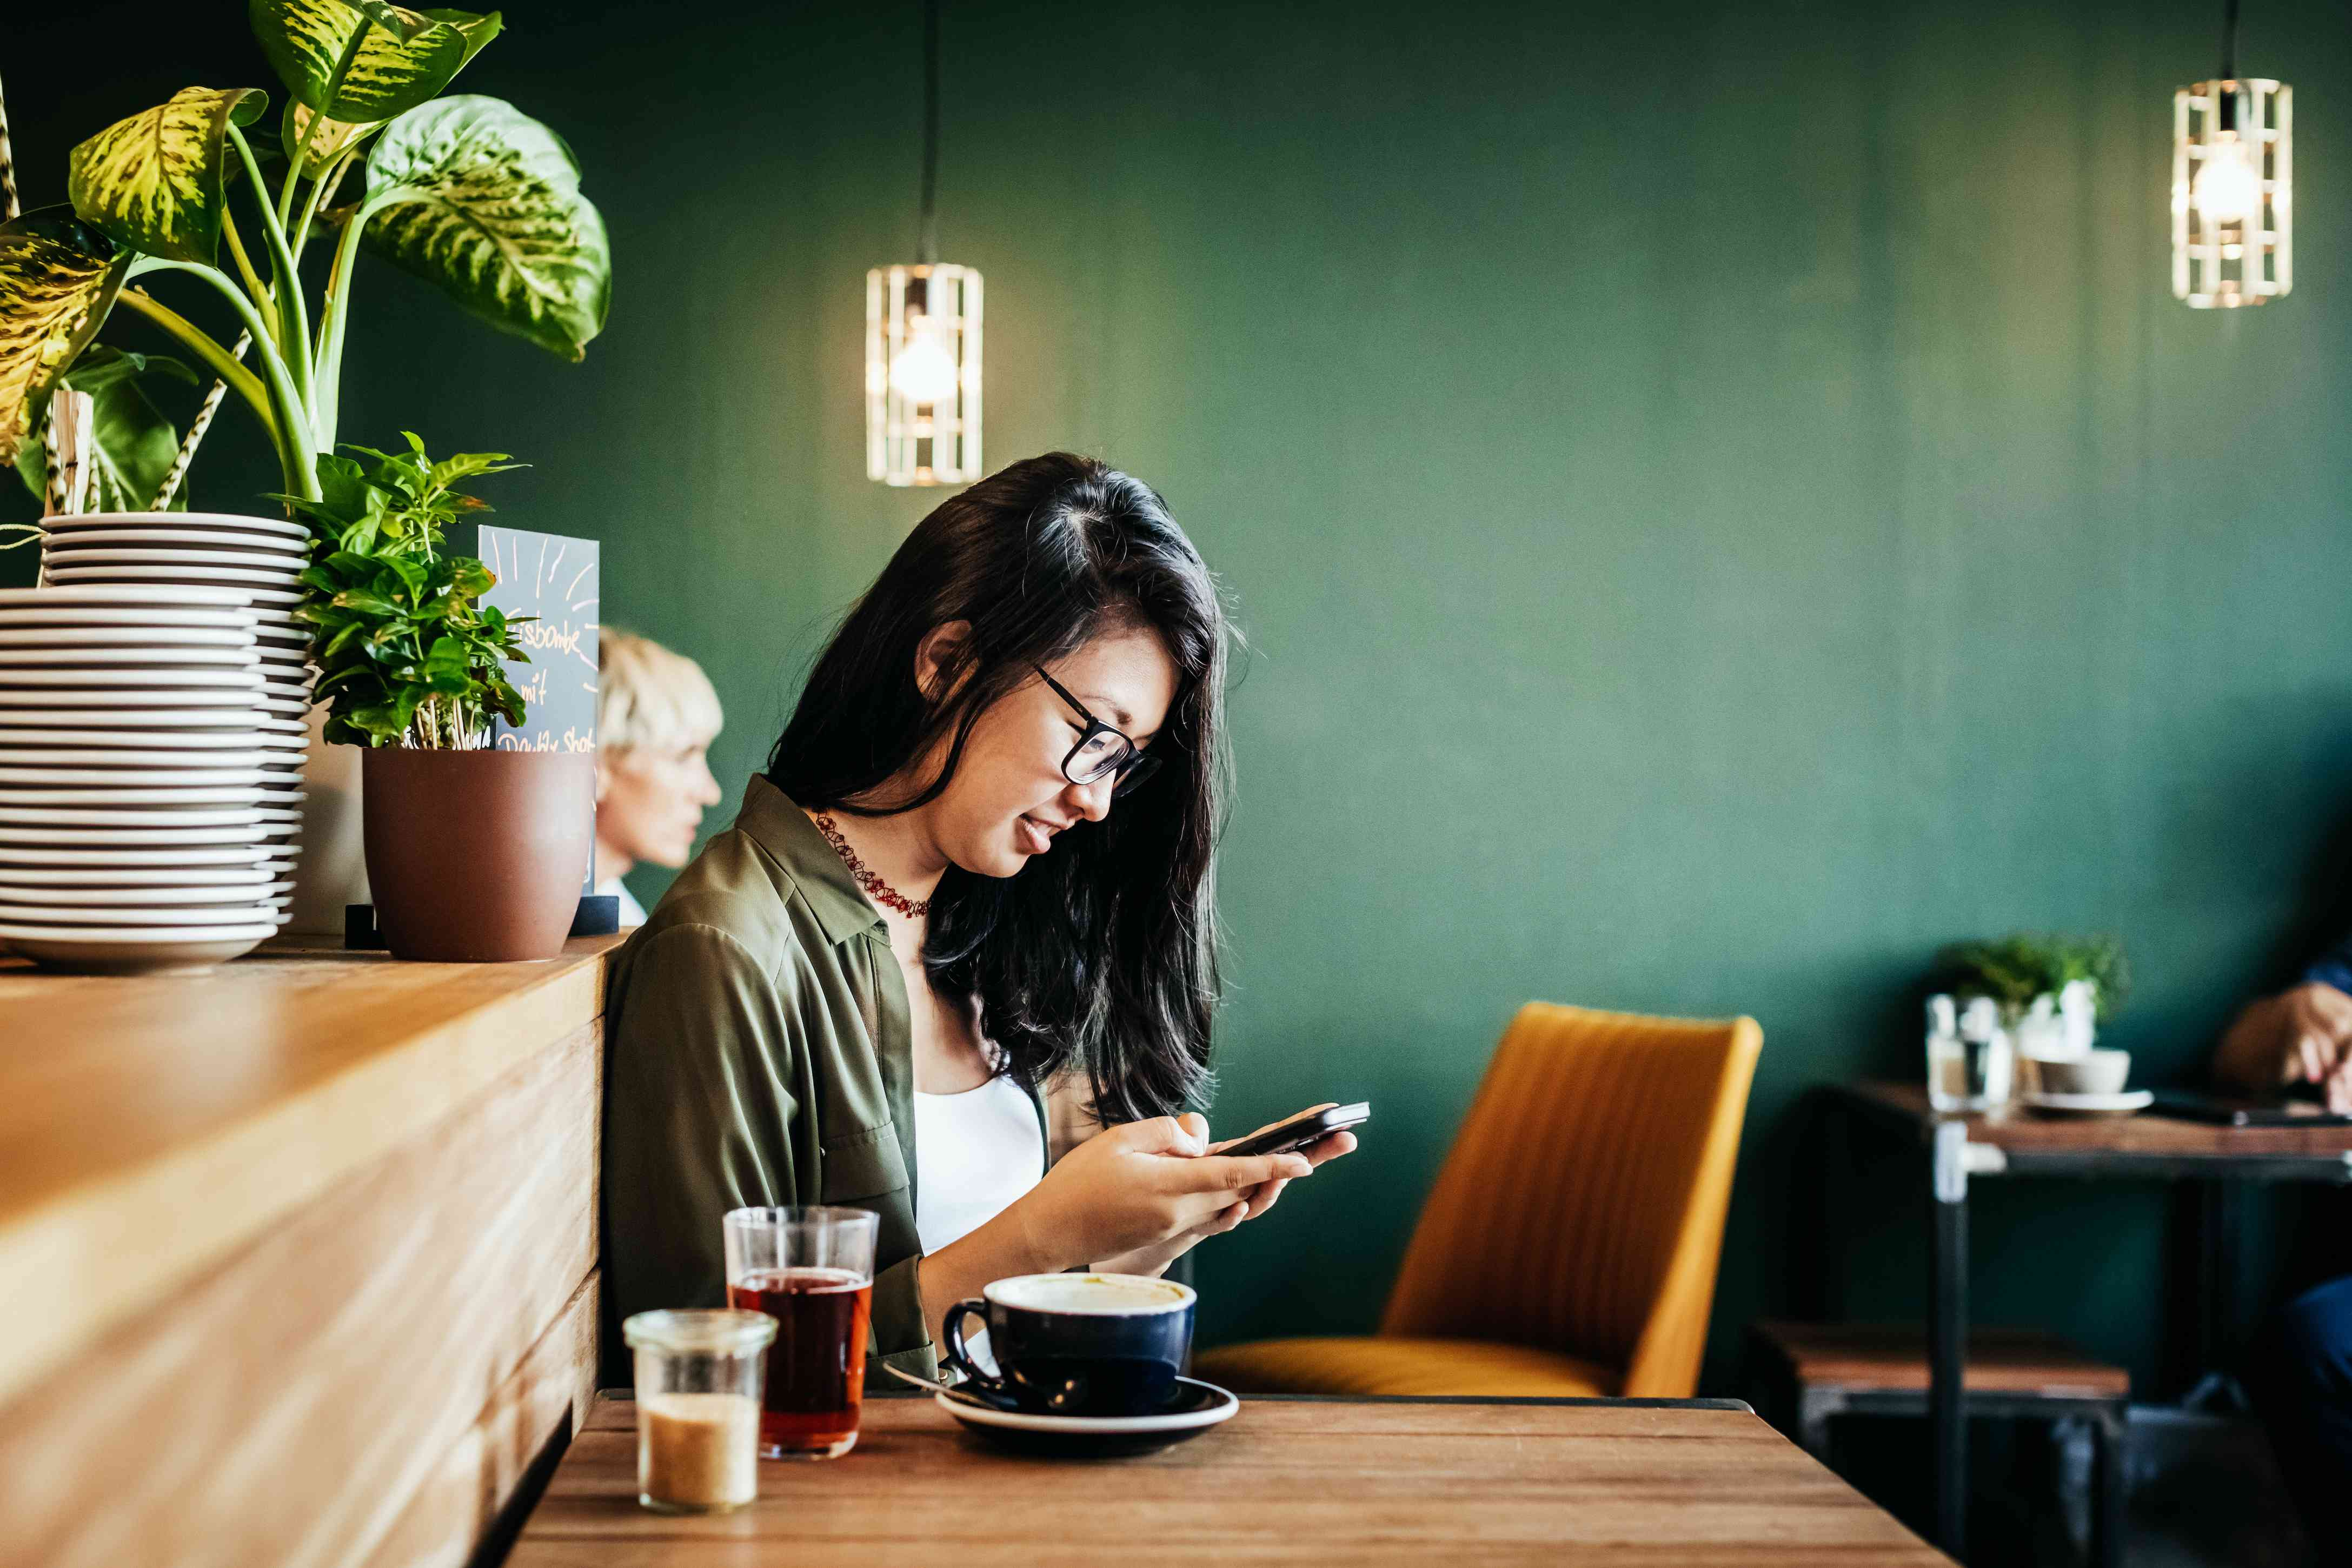 A woman using a phone in a coffee shop.